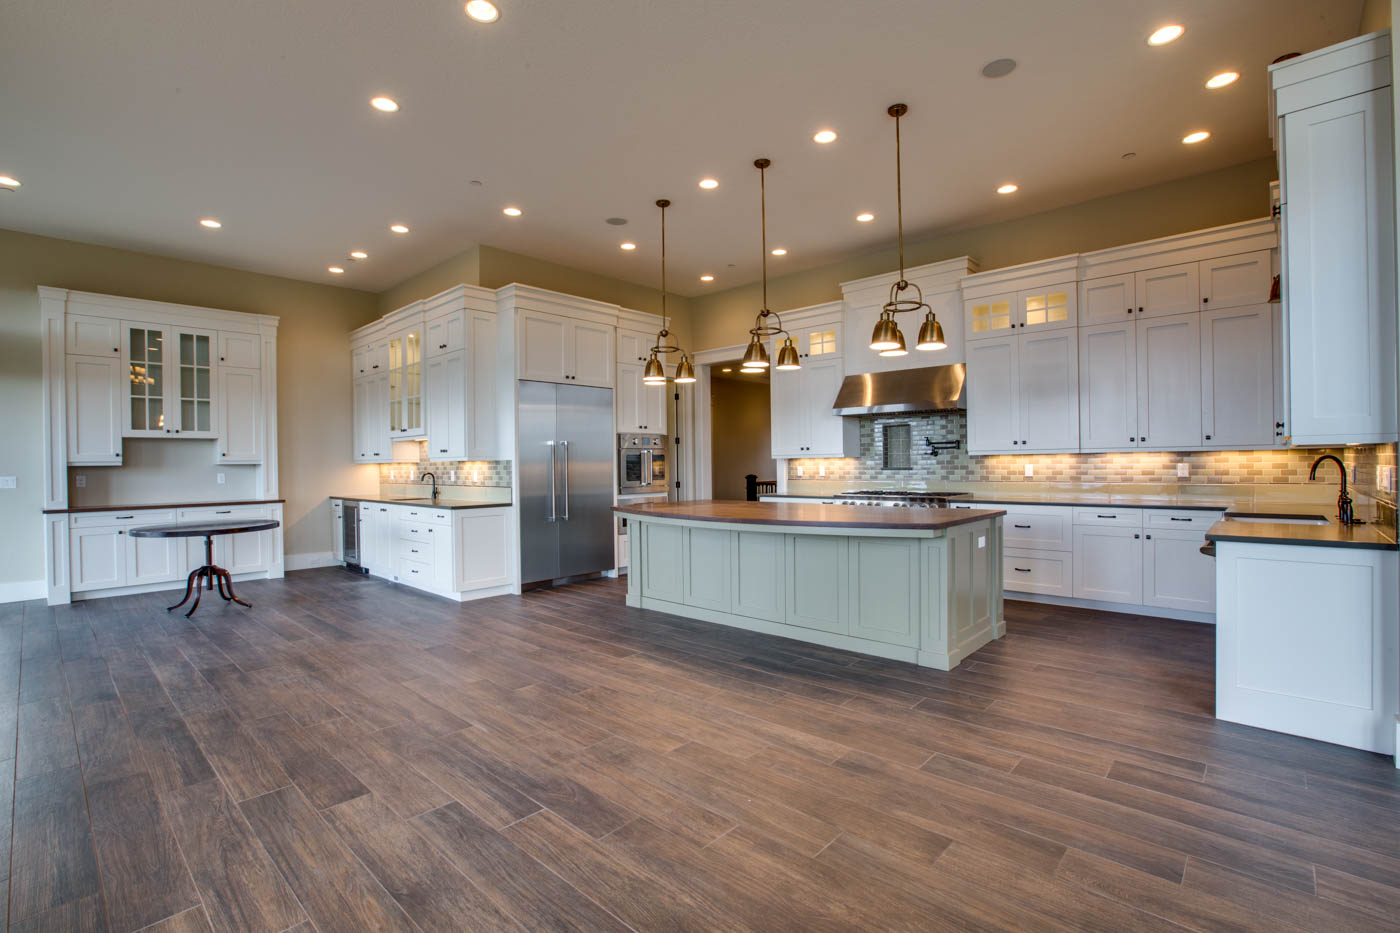 main_kitchen_17447-s-outlook-rd_036_webres